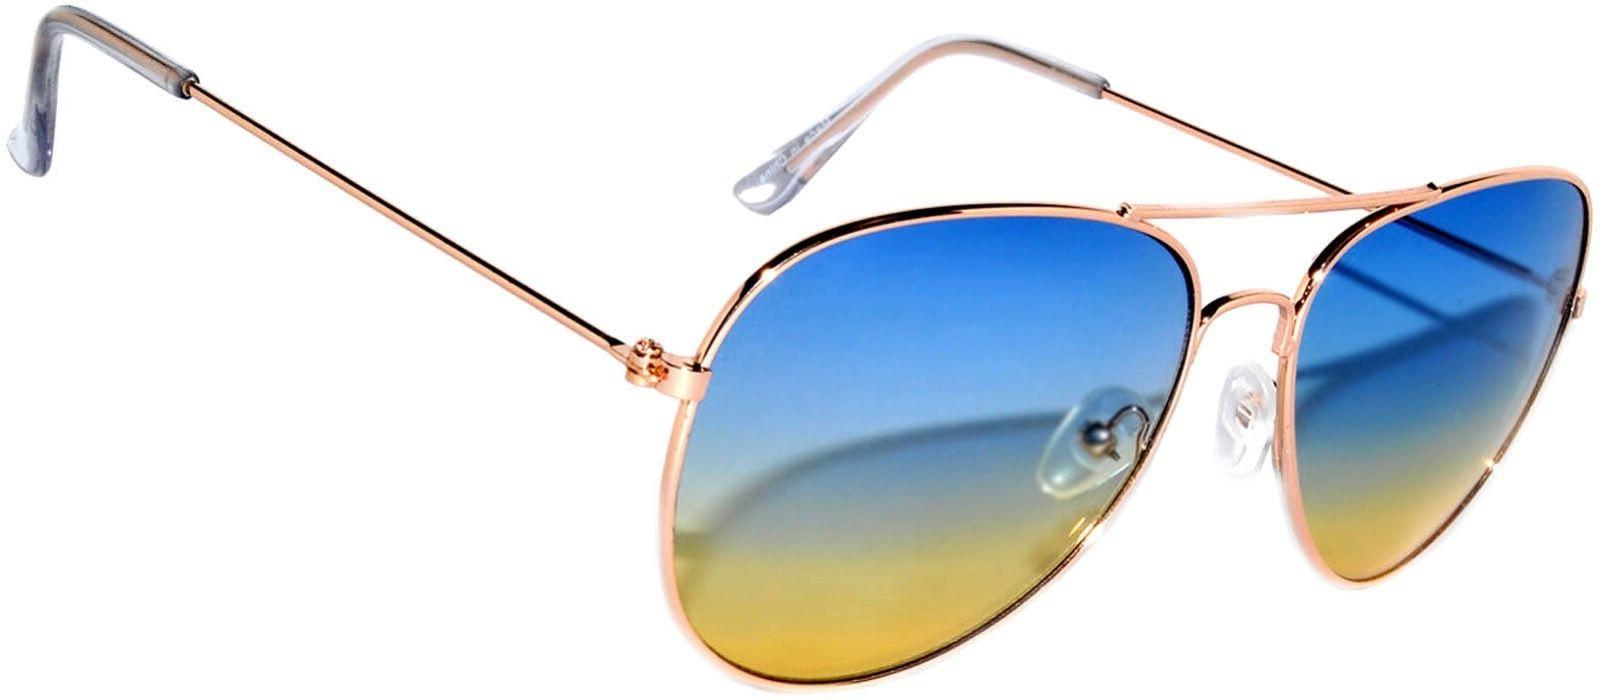 OWL Sunglasses 064 C3 Women's Men's Aviator Gold Frame B